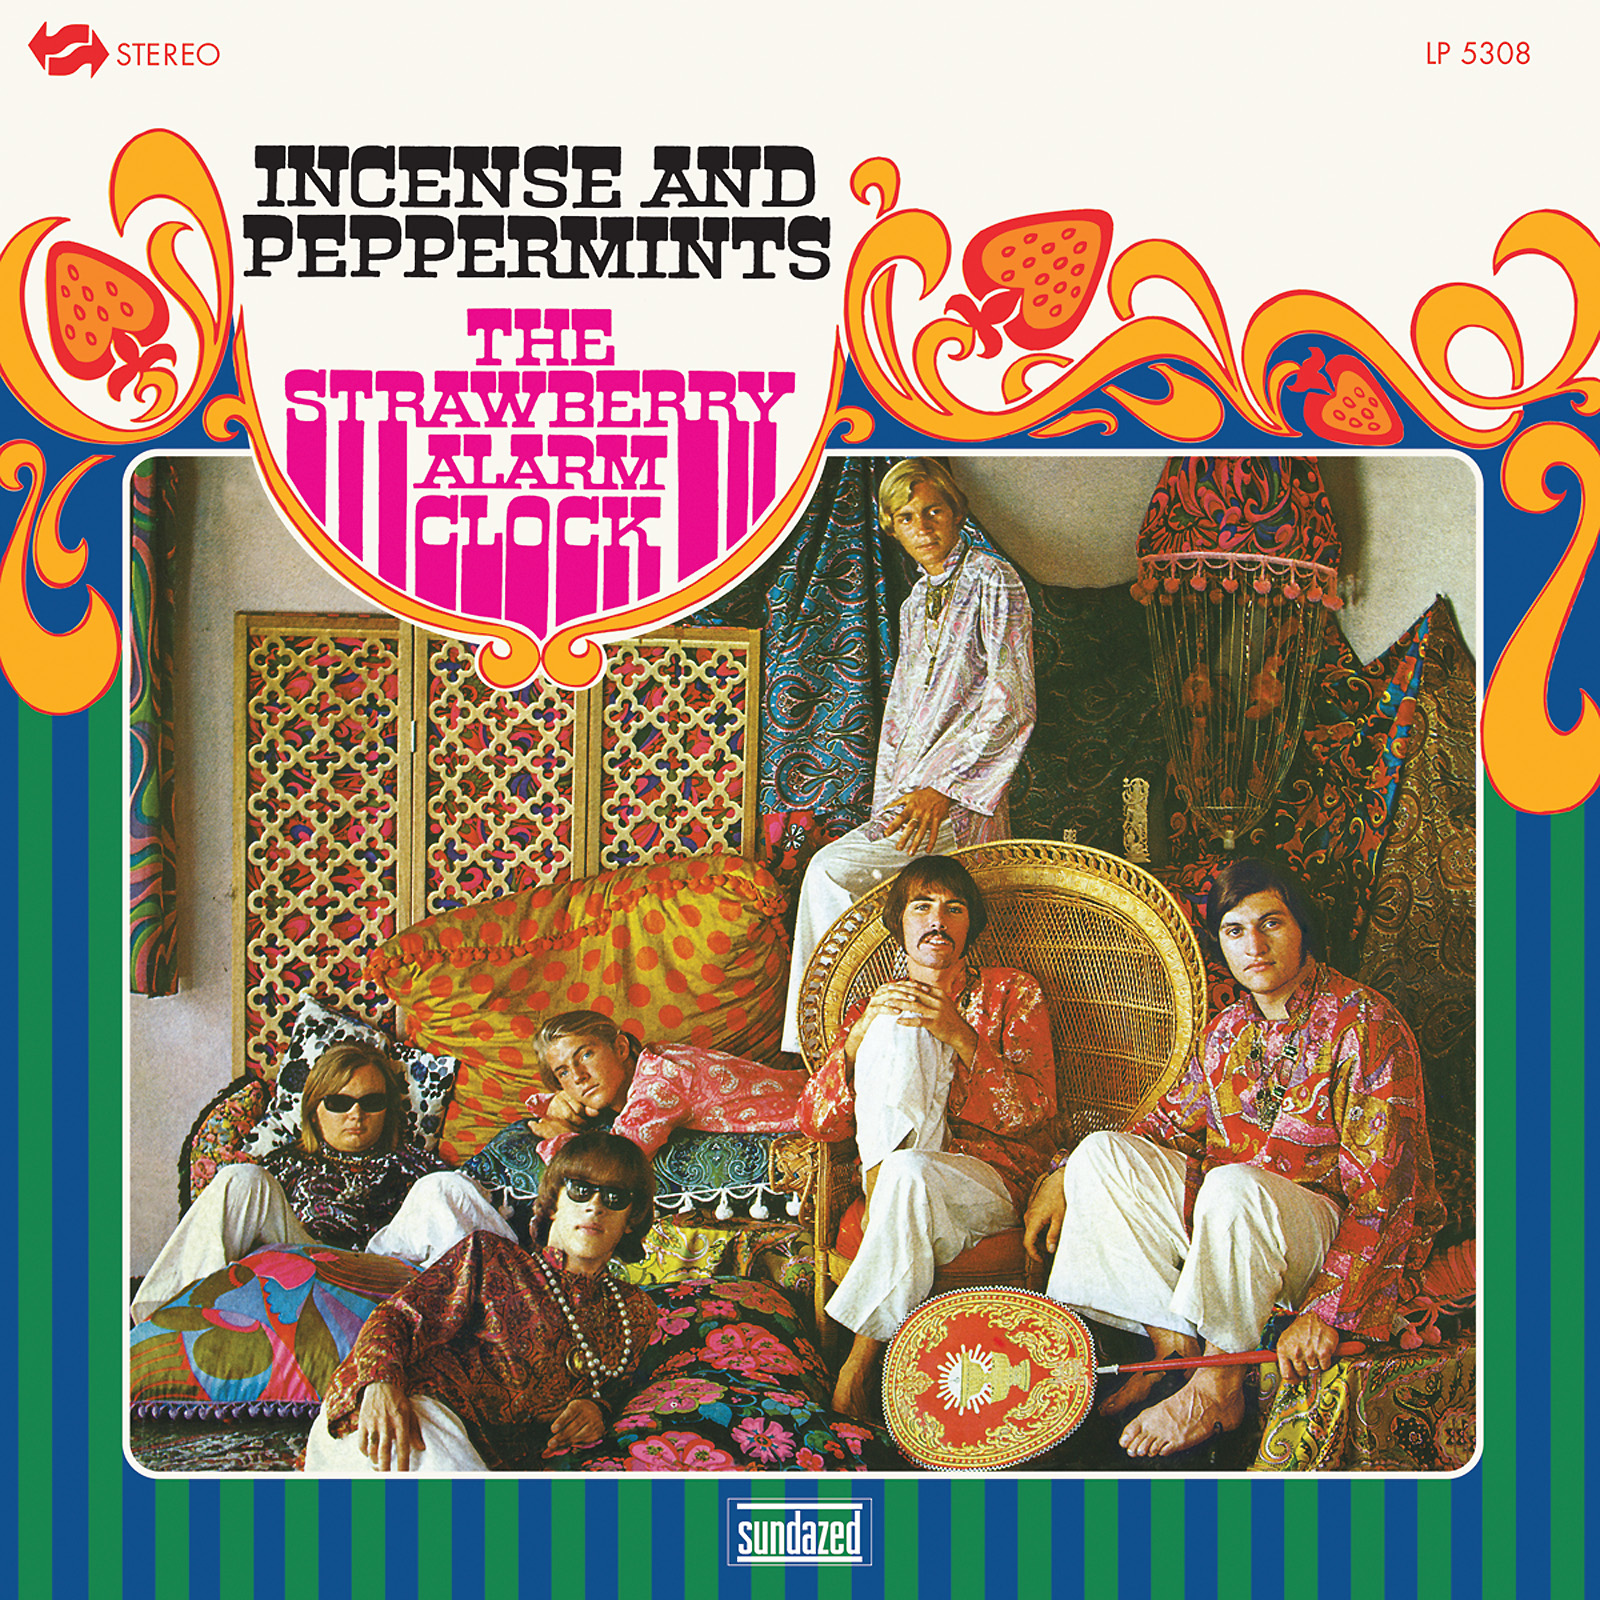 Strawberry Alarm Clock, The - Incense and Peppermints LP